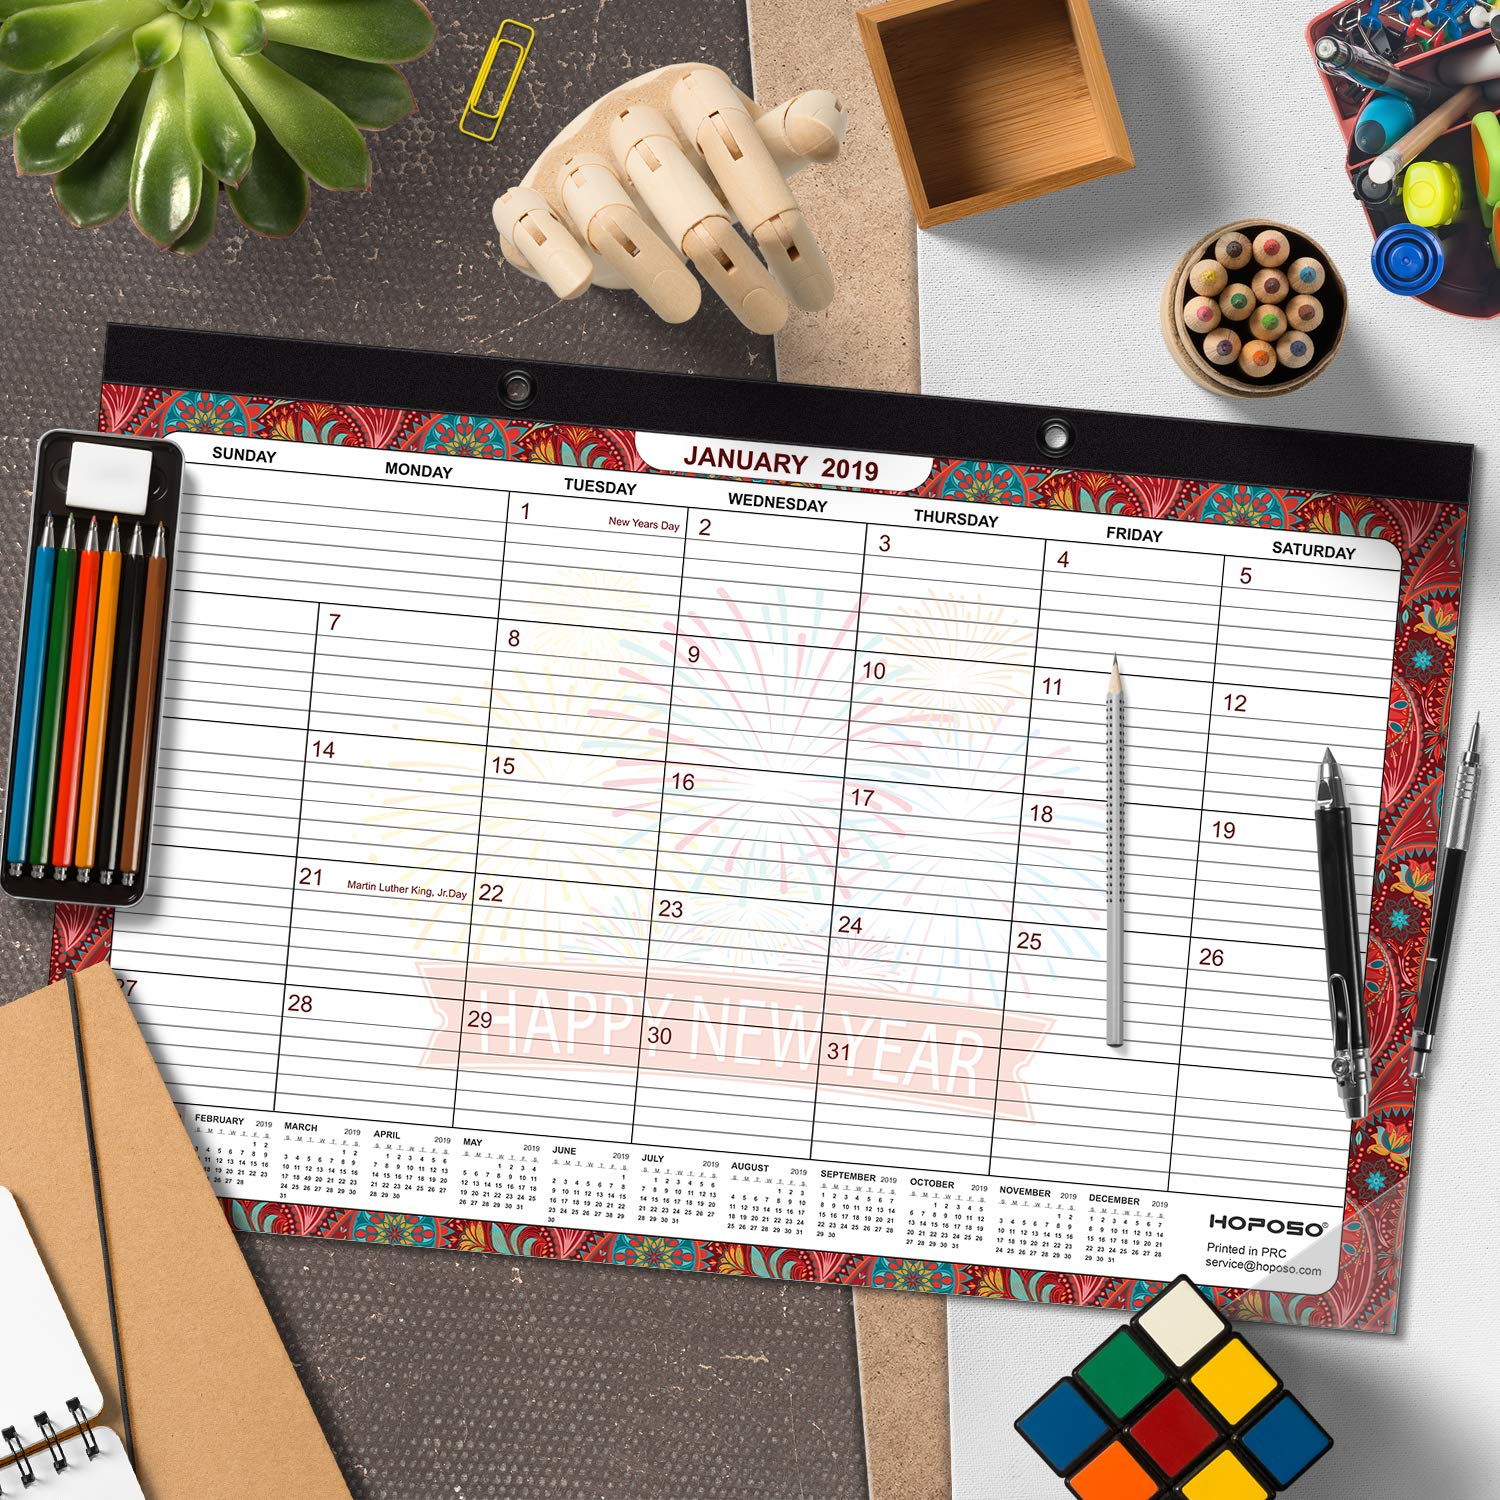 February 2020 Desktop Calendar Smashing Amazon.: Desk Calendar 2019, Wall Calendar Large Desktop